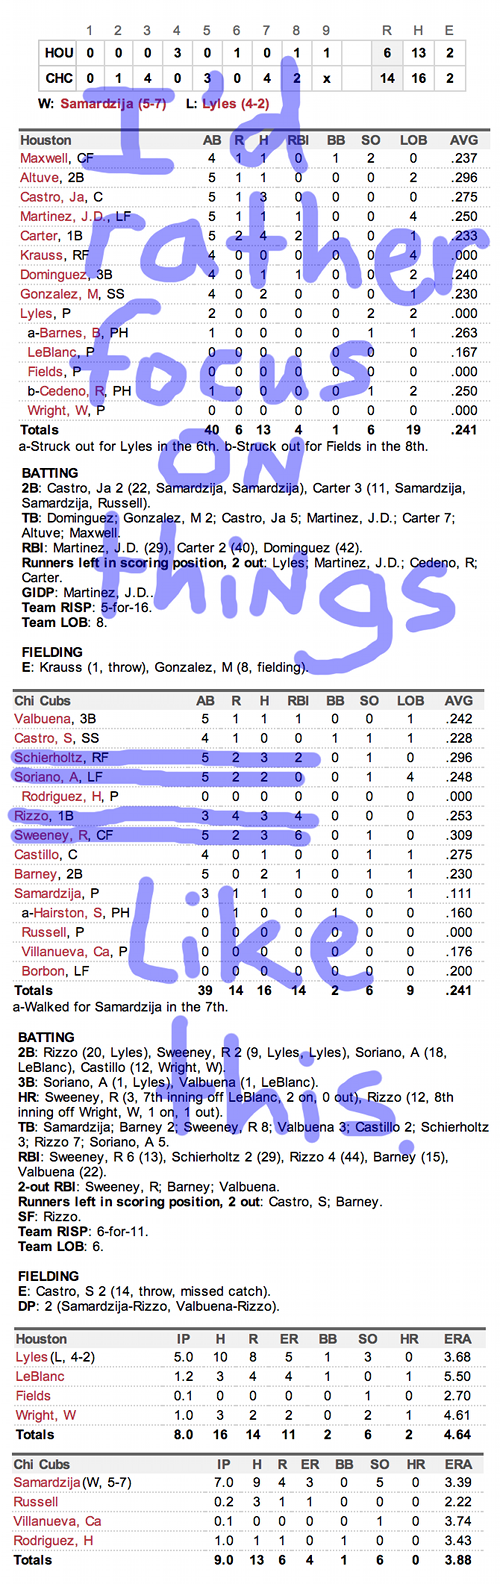 Enhanced Box Score: Astros 6, Cubs 14 – June 23, 2013